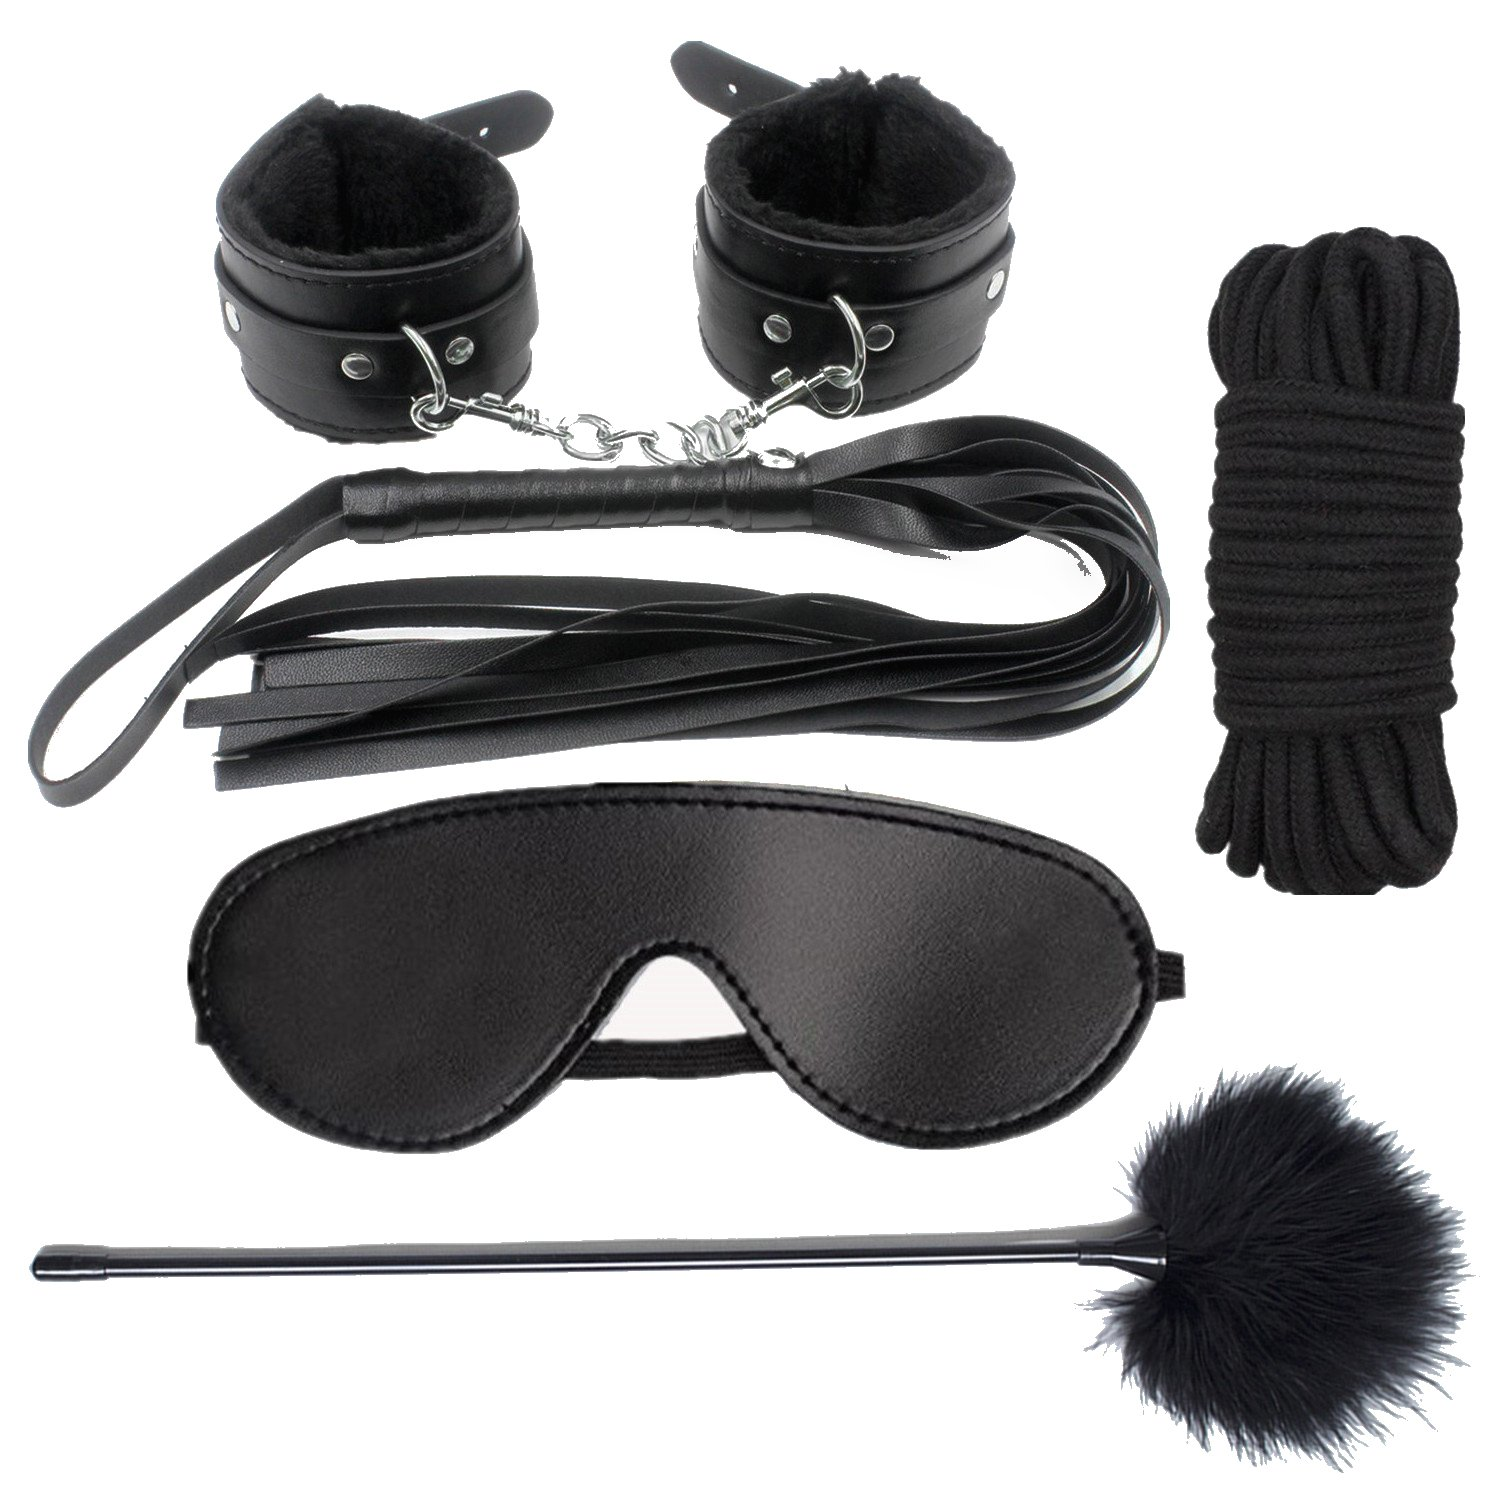 BDSM Restraint Kit, iMiMi Under Bed Restraint Sex for Sex Play Bondage Collection Sets Sex Tings with Furry Cuffs Handcuffs, Blindfold, Feather for Couples